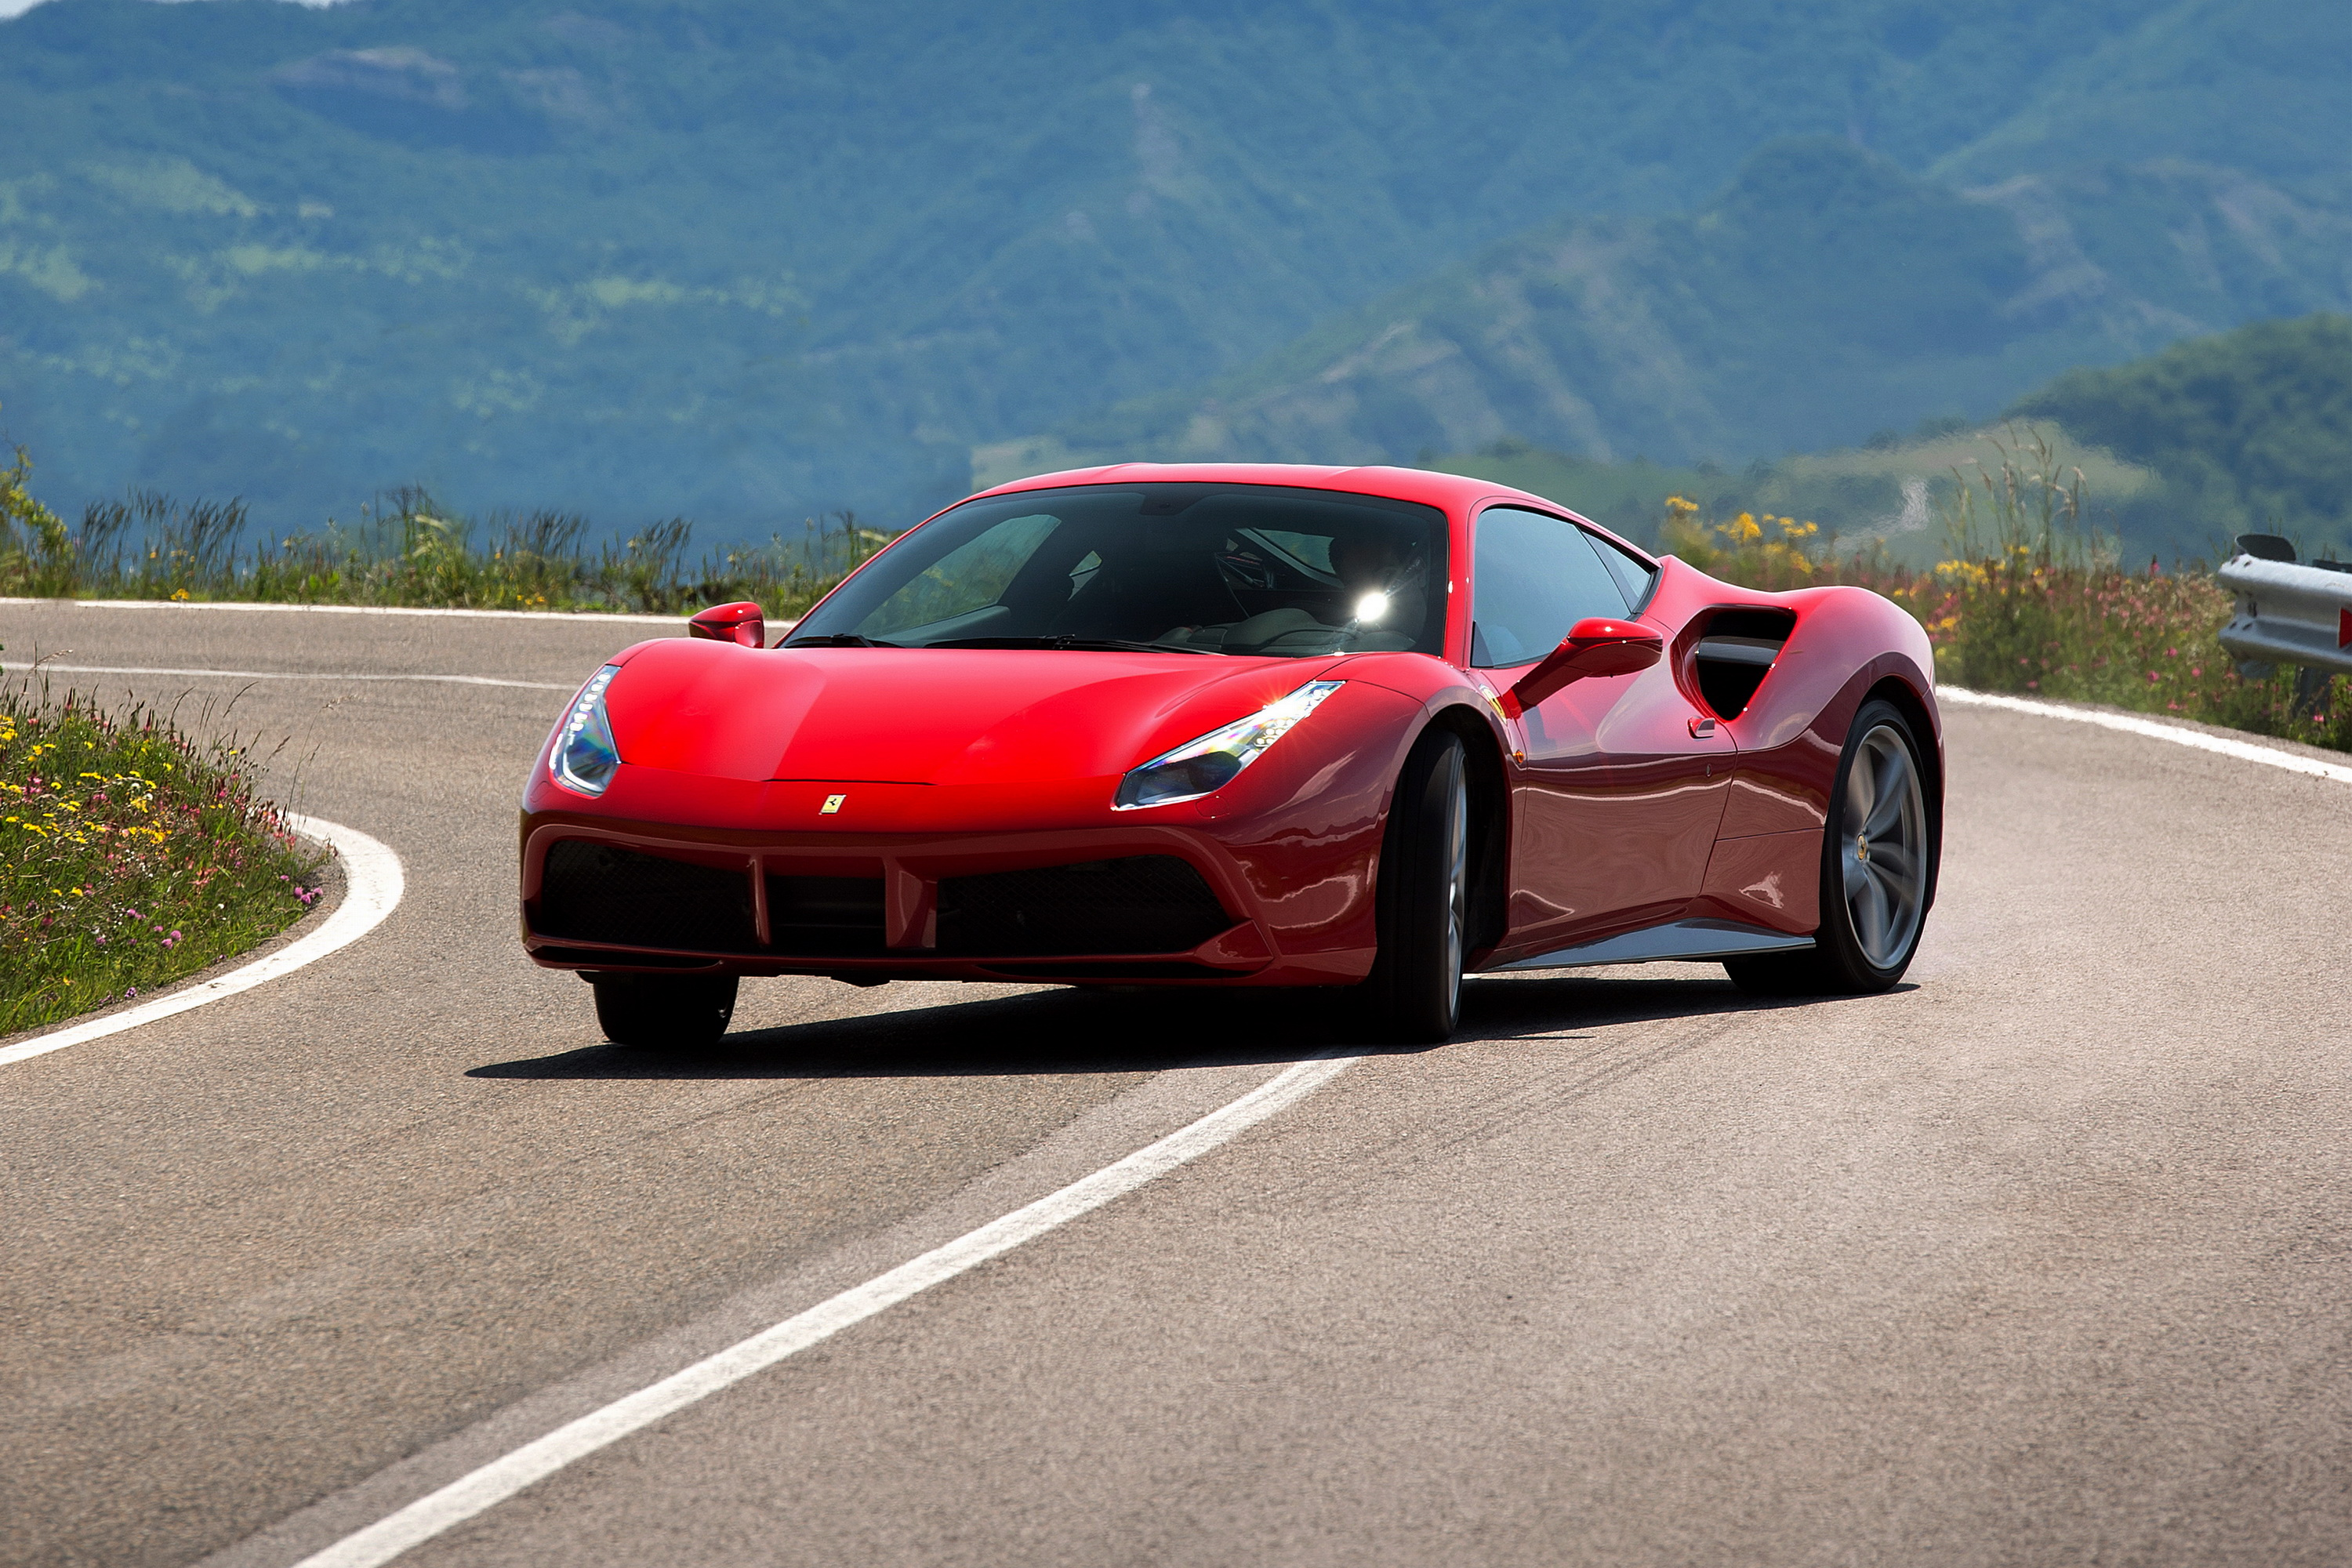 2015 Ferrari 488 Gtb Ferrari 488 Gtb Wallpaper Hd 1492001 Hd Wallpaper Backgrounds Download